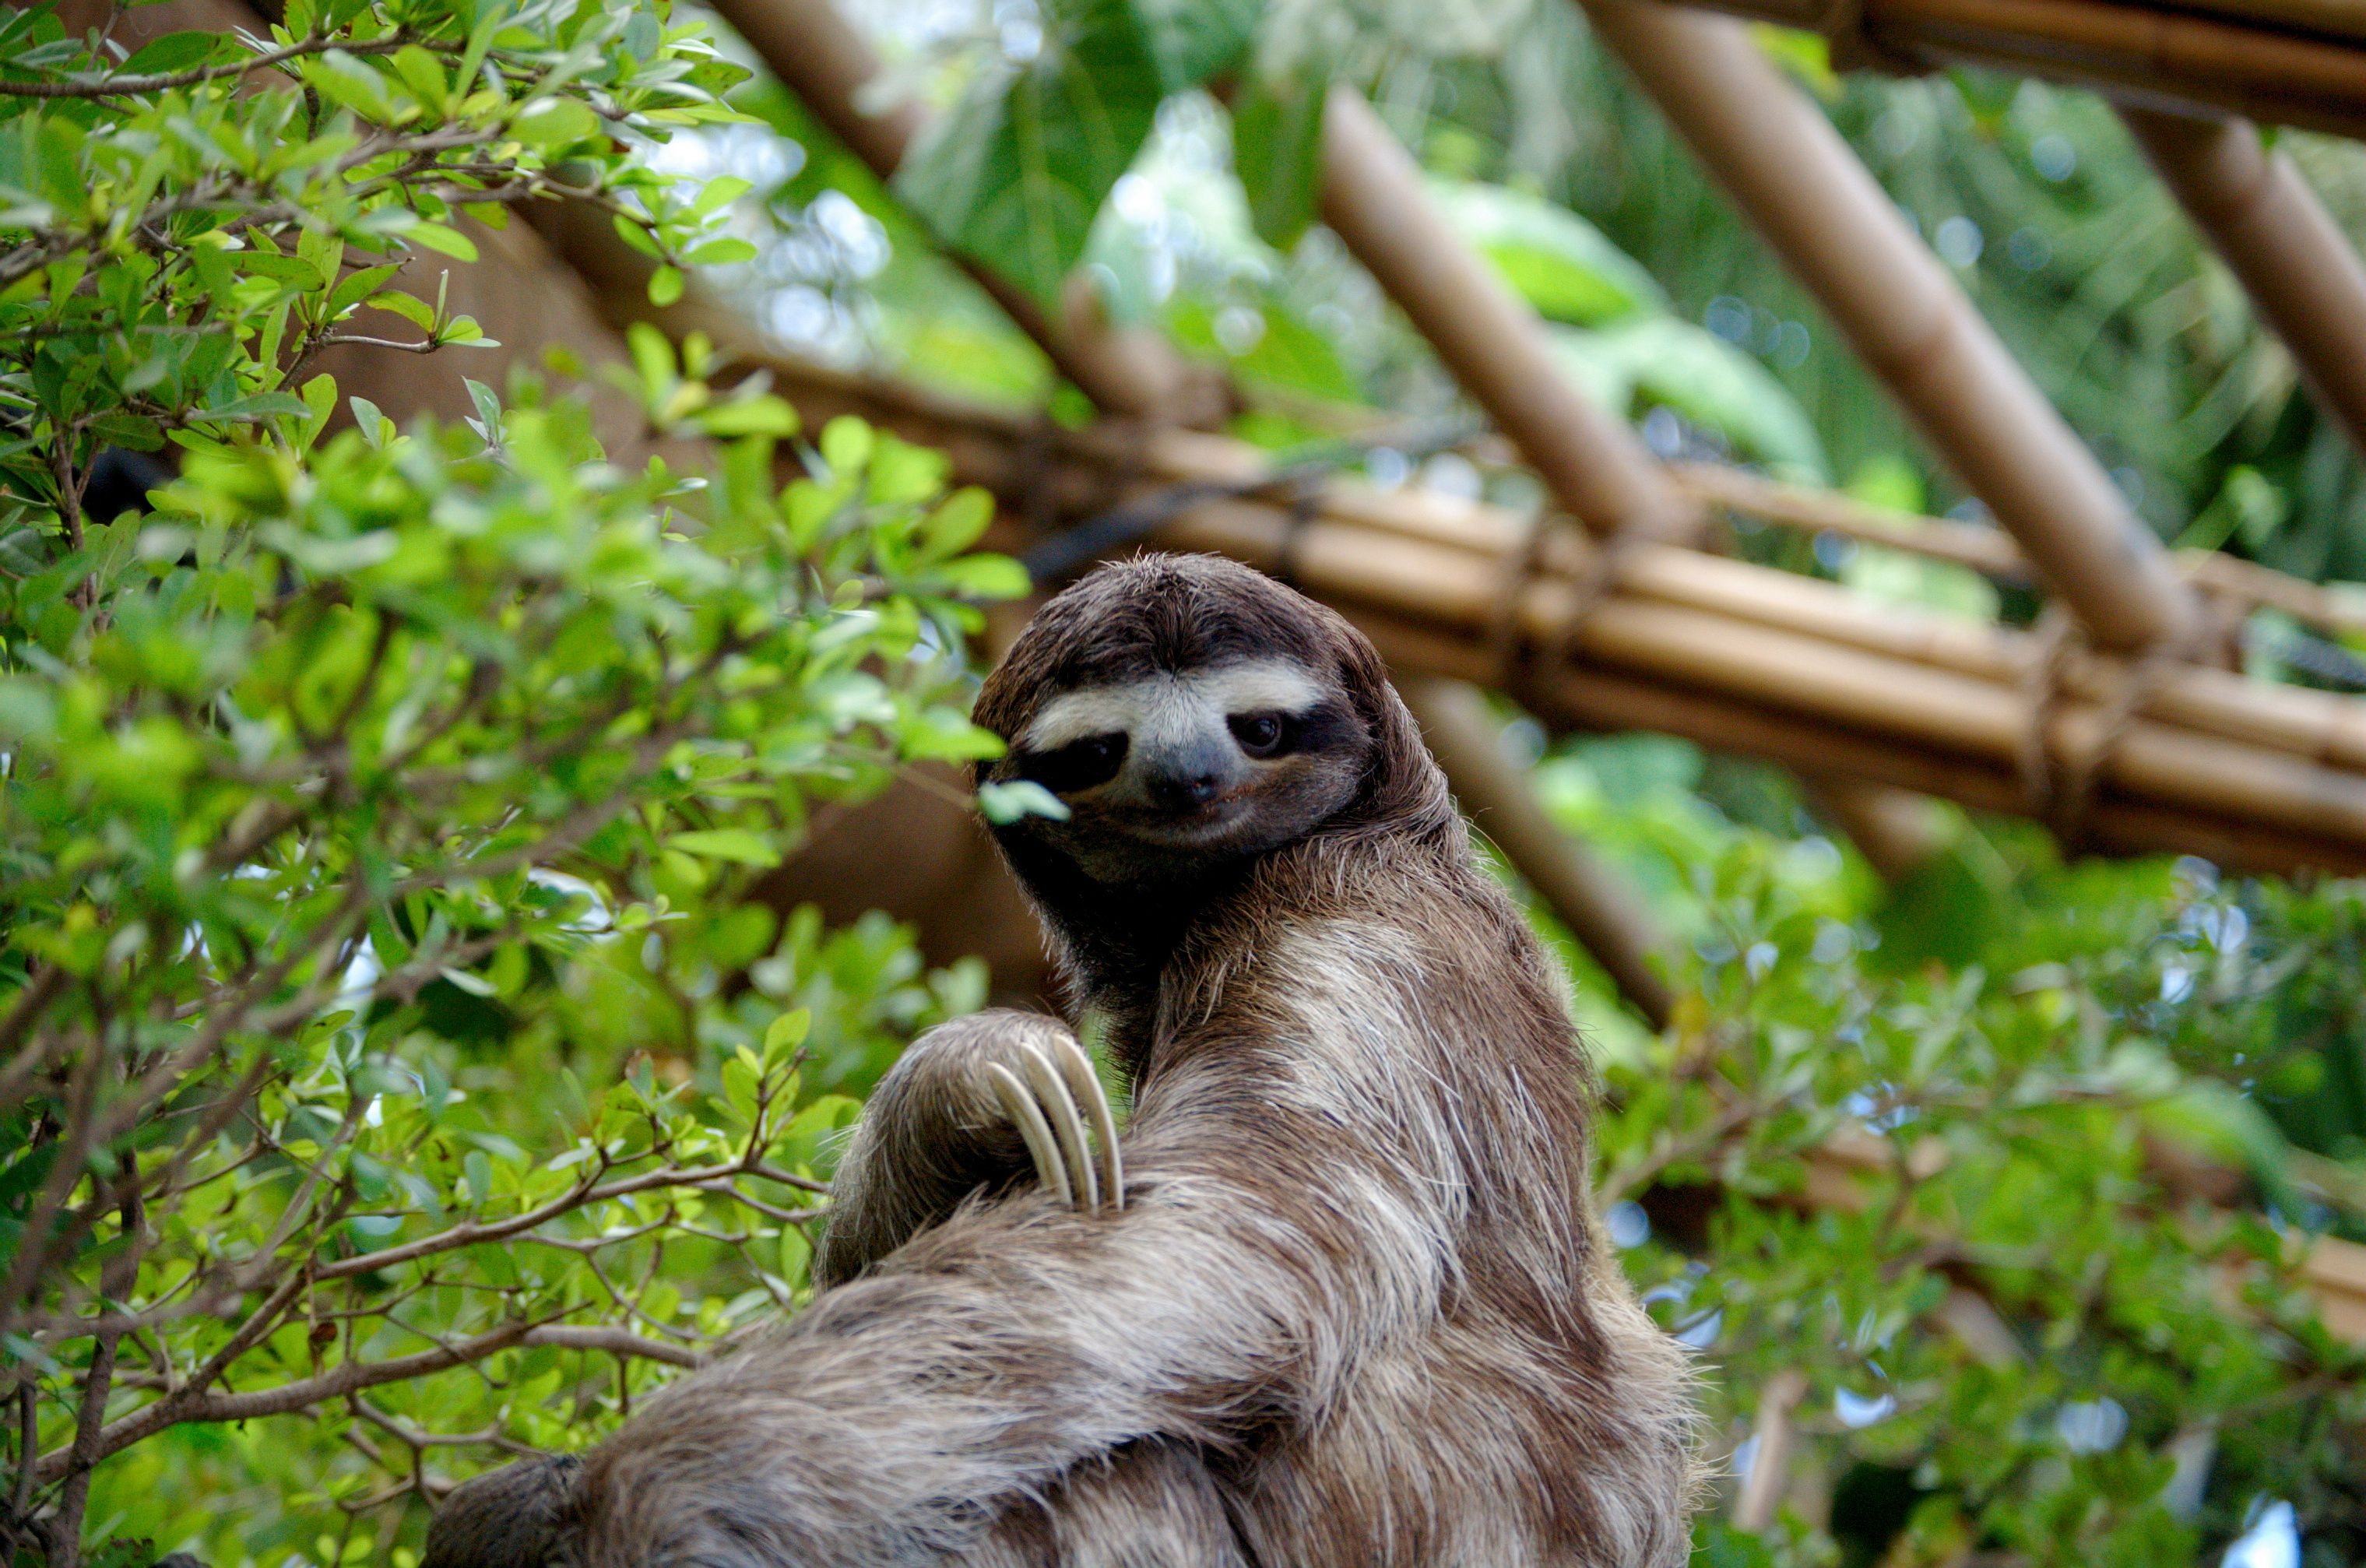 The health of sloth populations